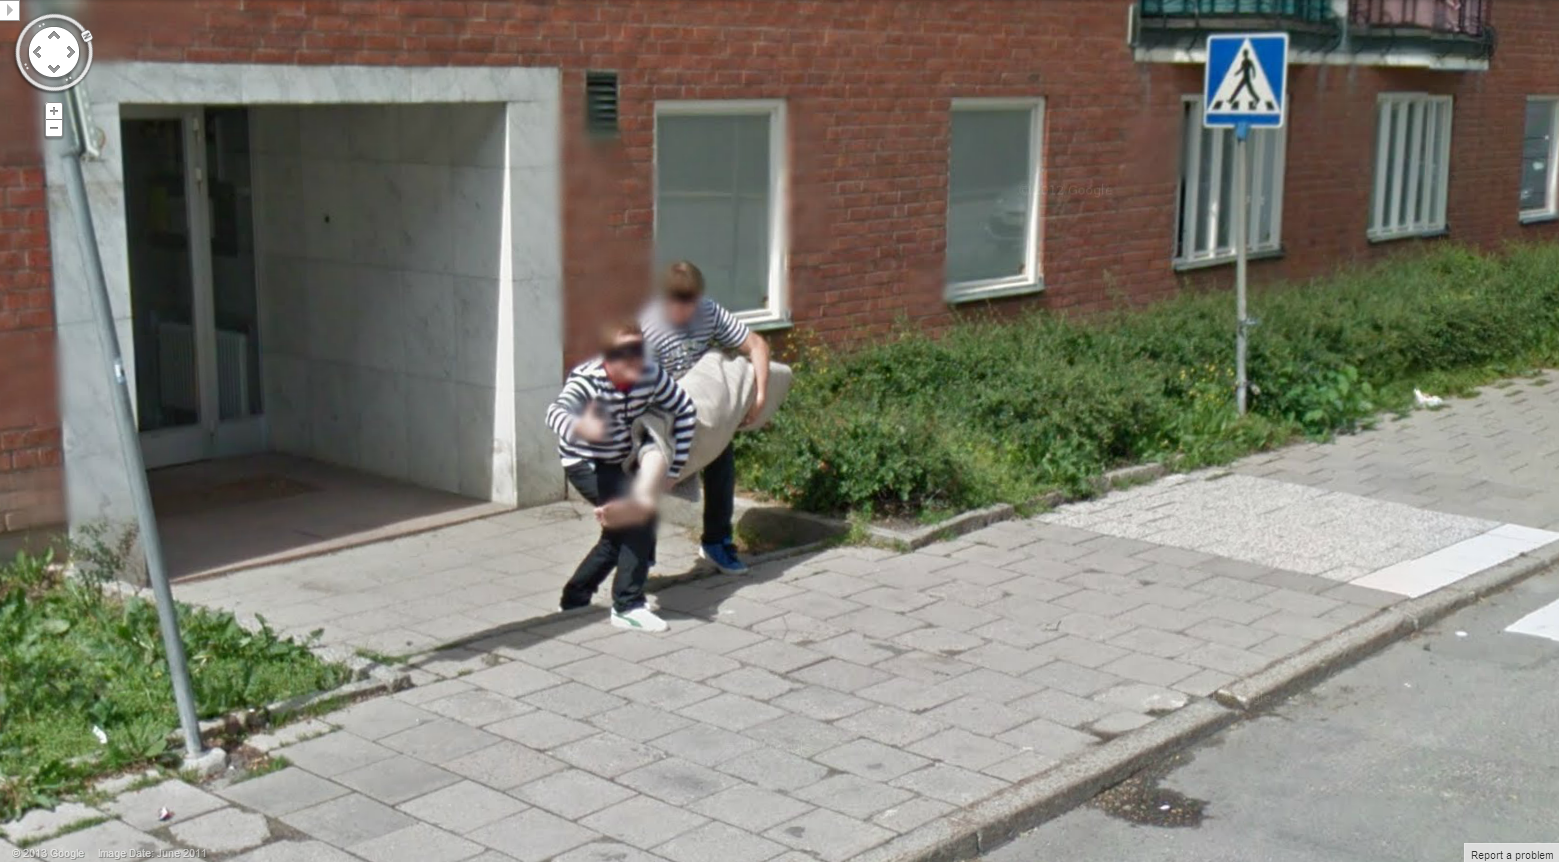 Two guys carrying a corpse caught on Google Street View!